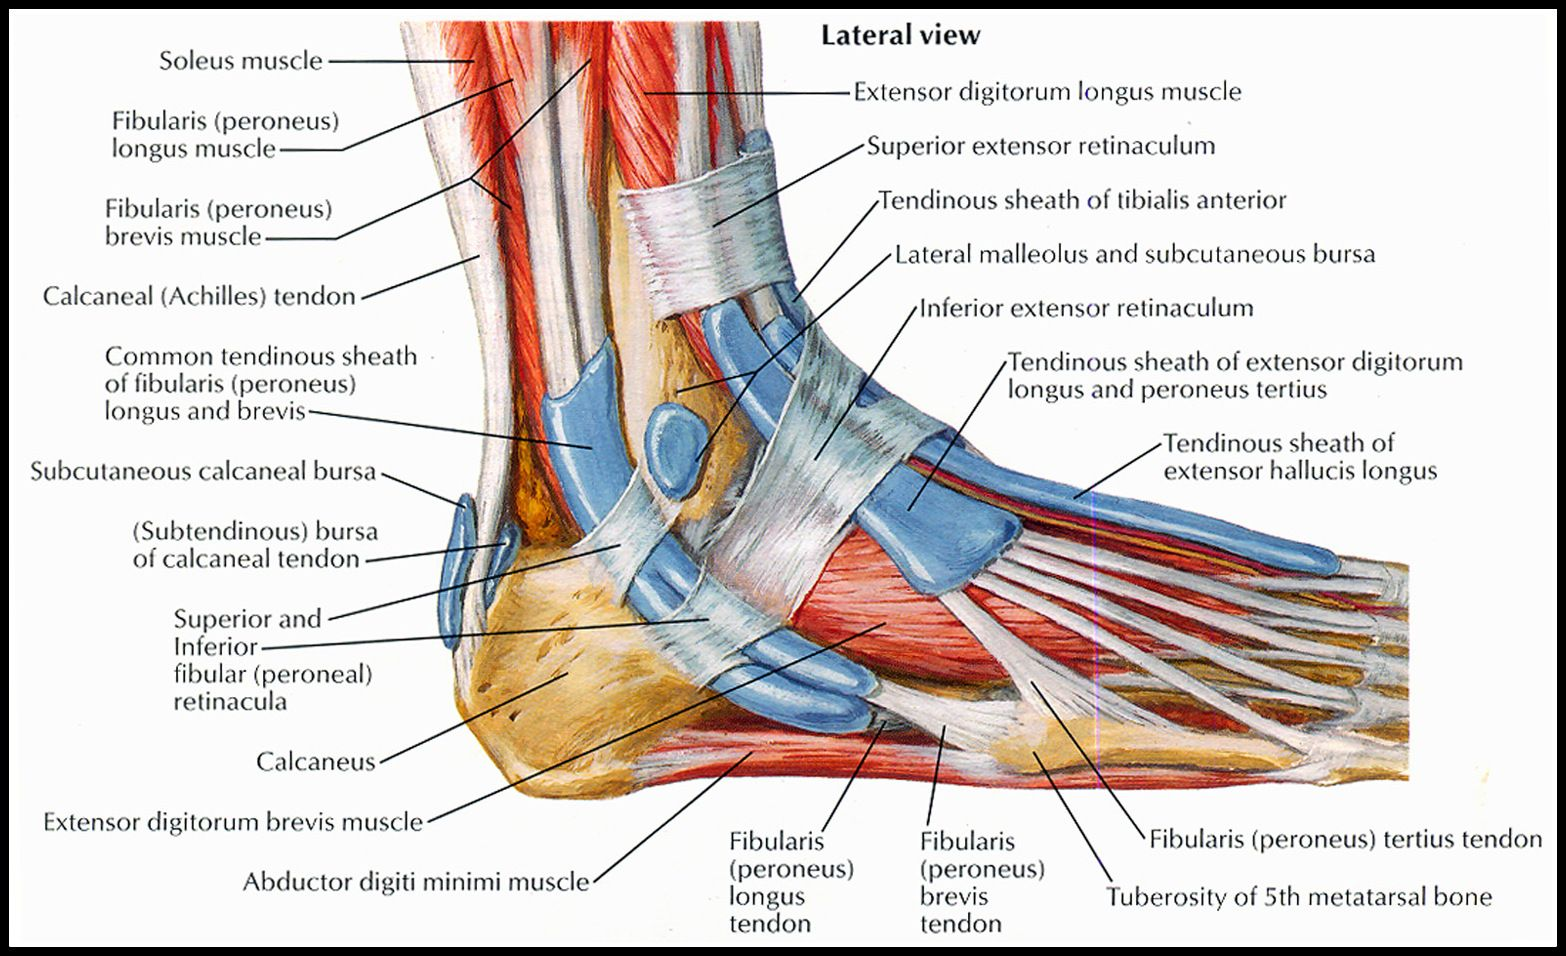 tendon sheath of ankleperoneal netter1 peroneus longus muscle diagram ankle [ 1566 x 956 Pixel ]